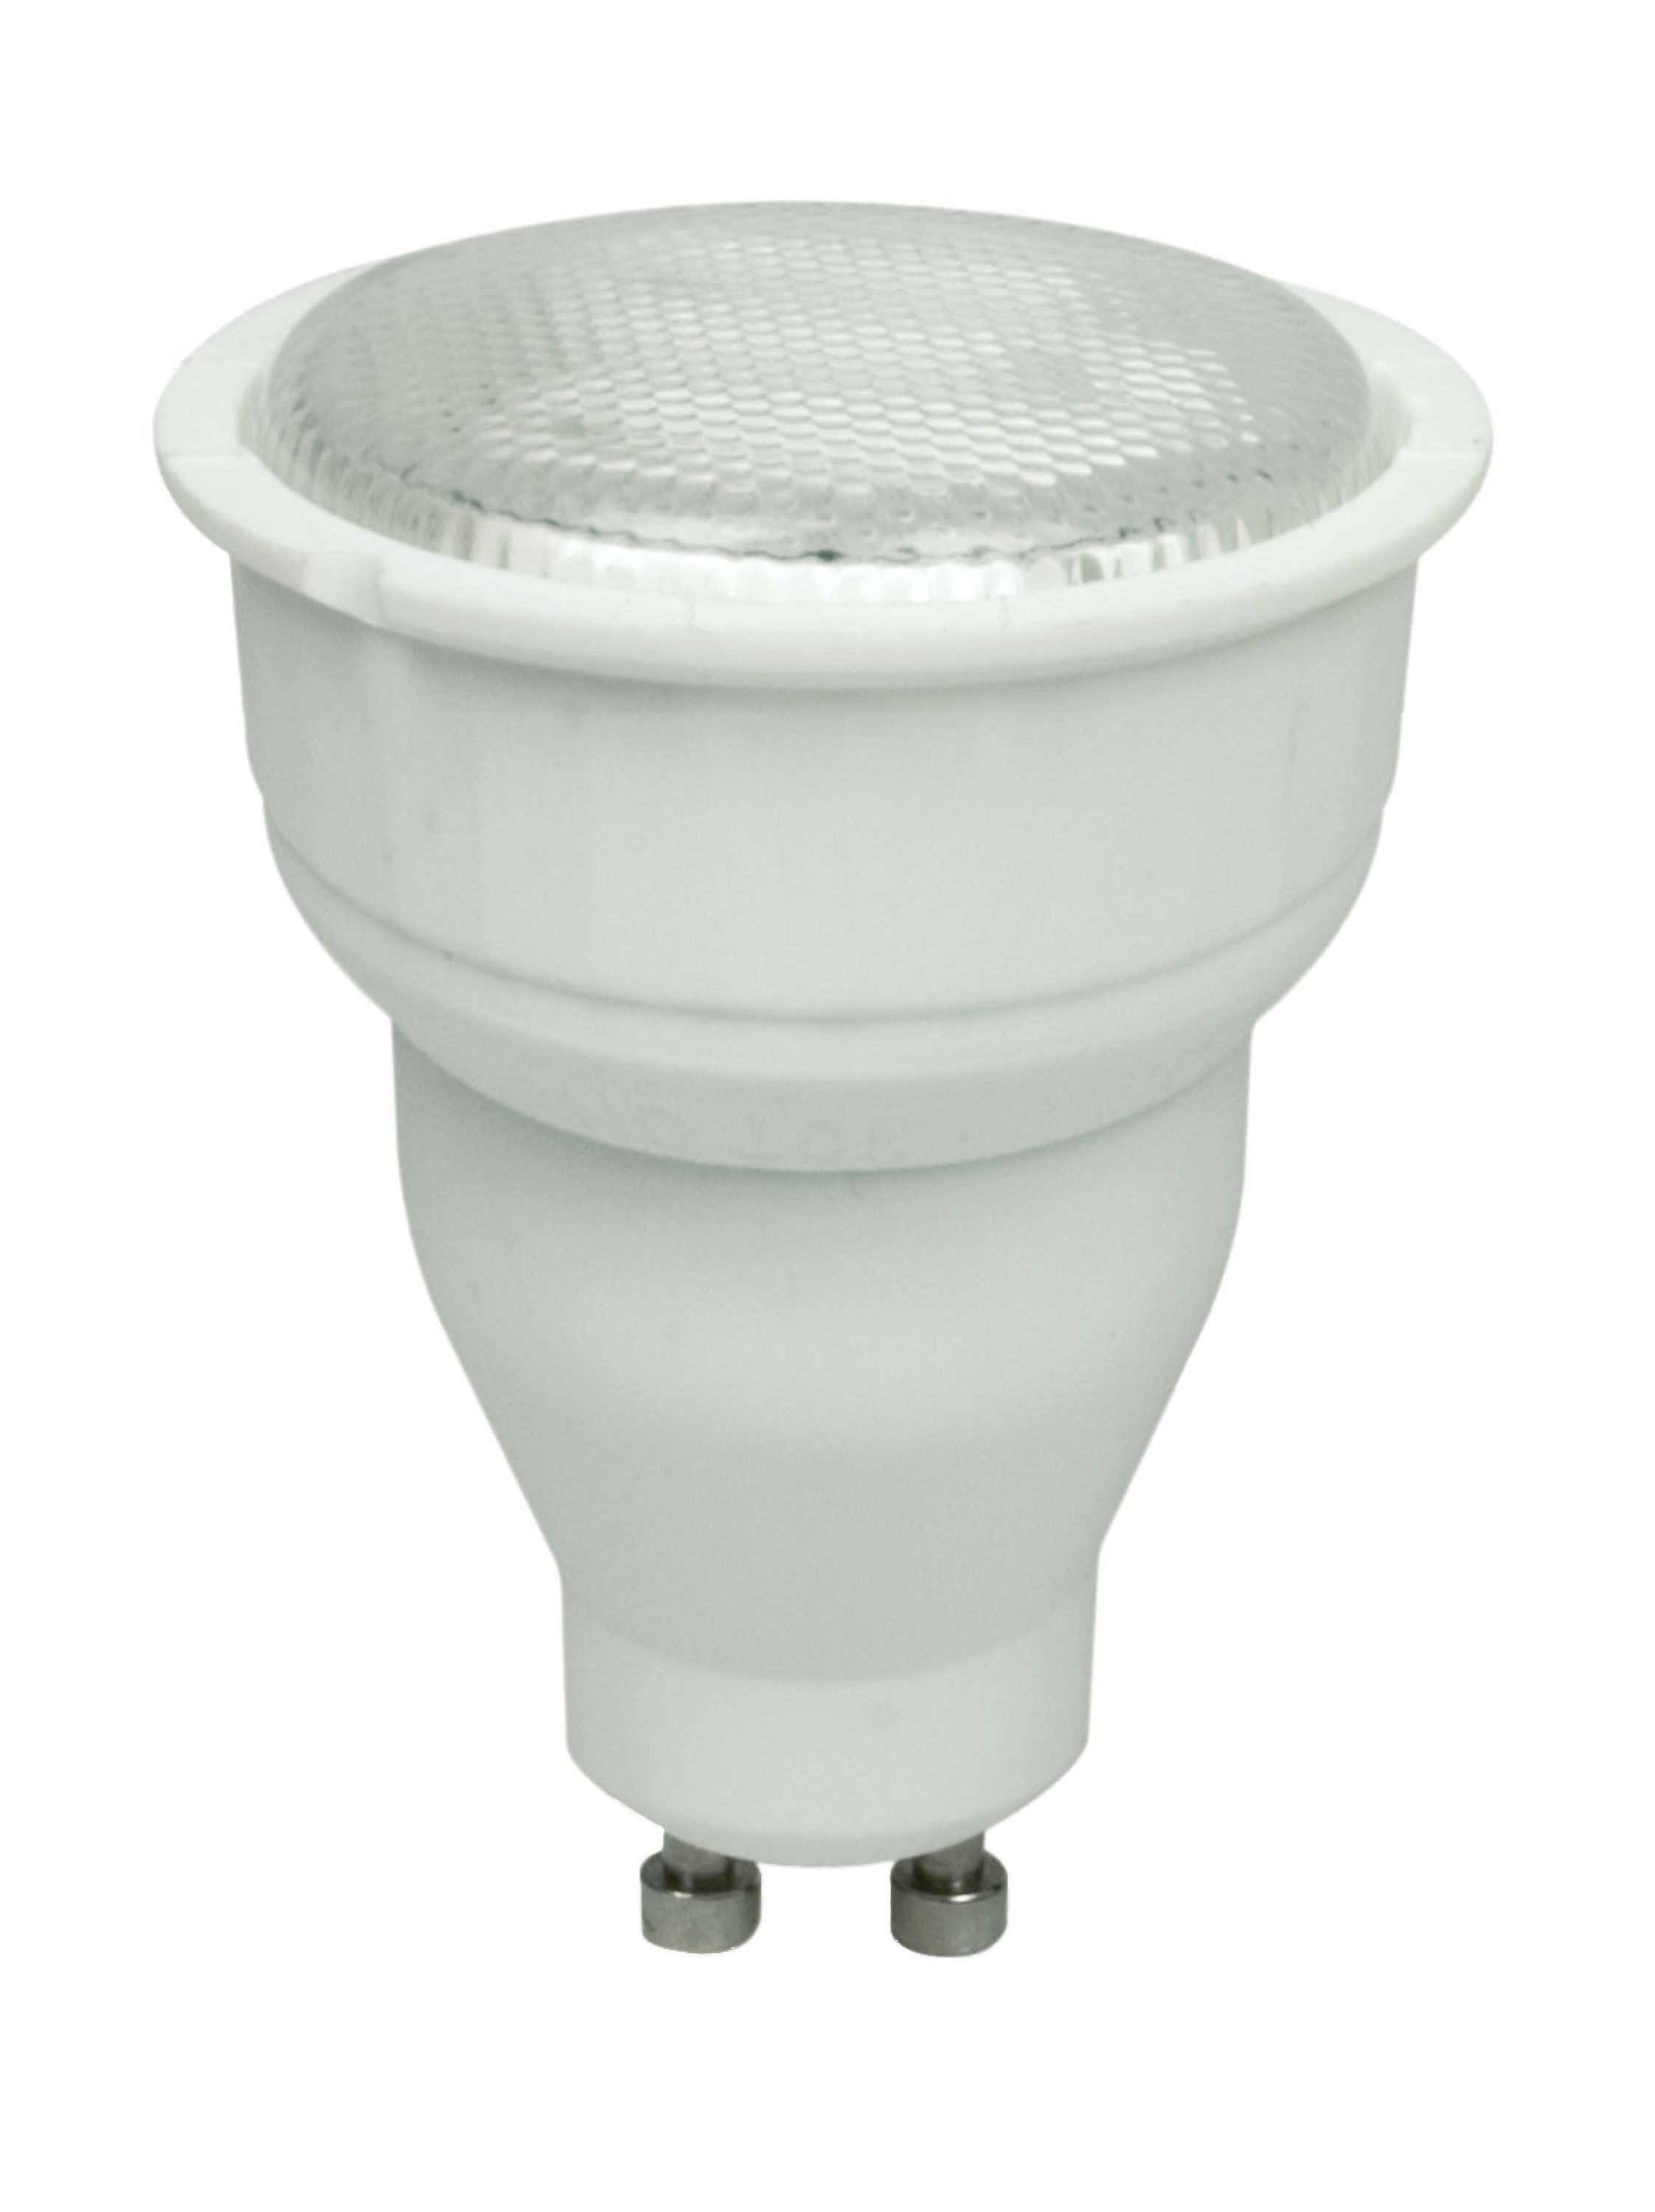 Boka LED Light (IP65, square, stainless steel)